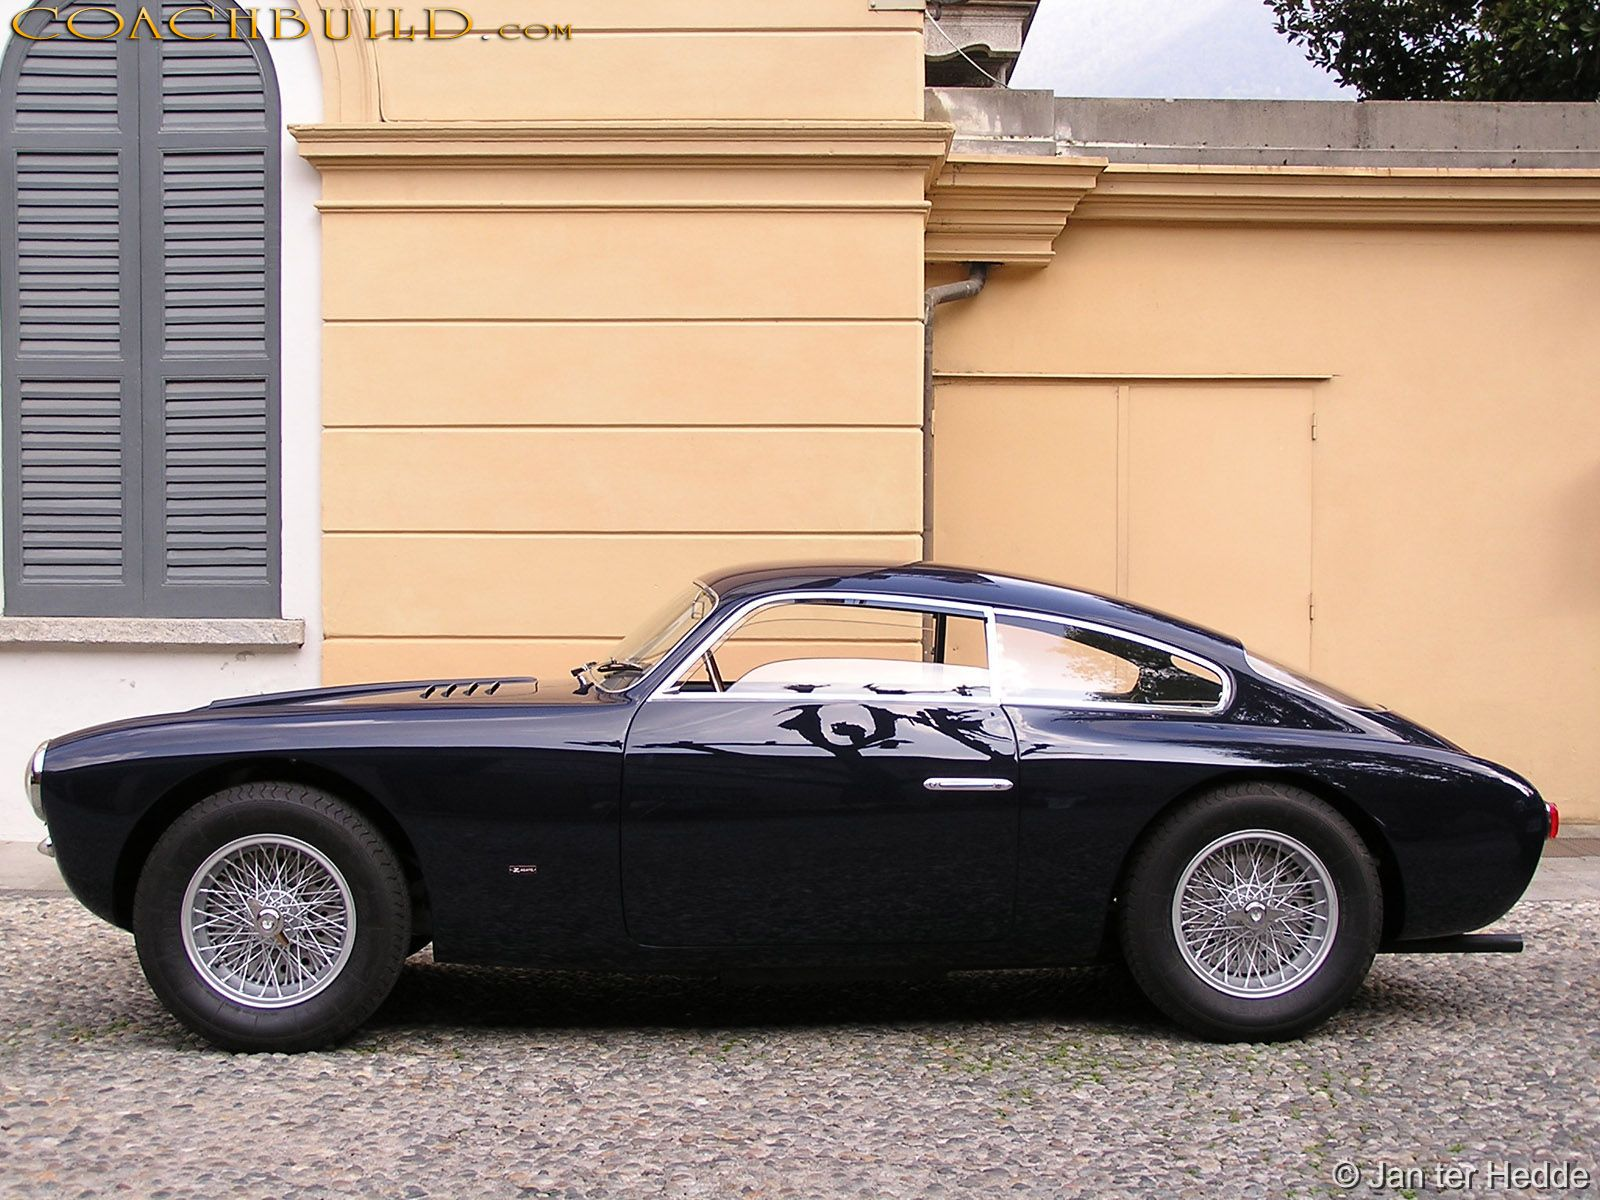 Maserati Zagato Love It According To The Alexa Rankings - Sports cars ranking